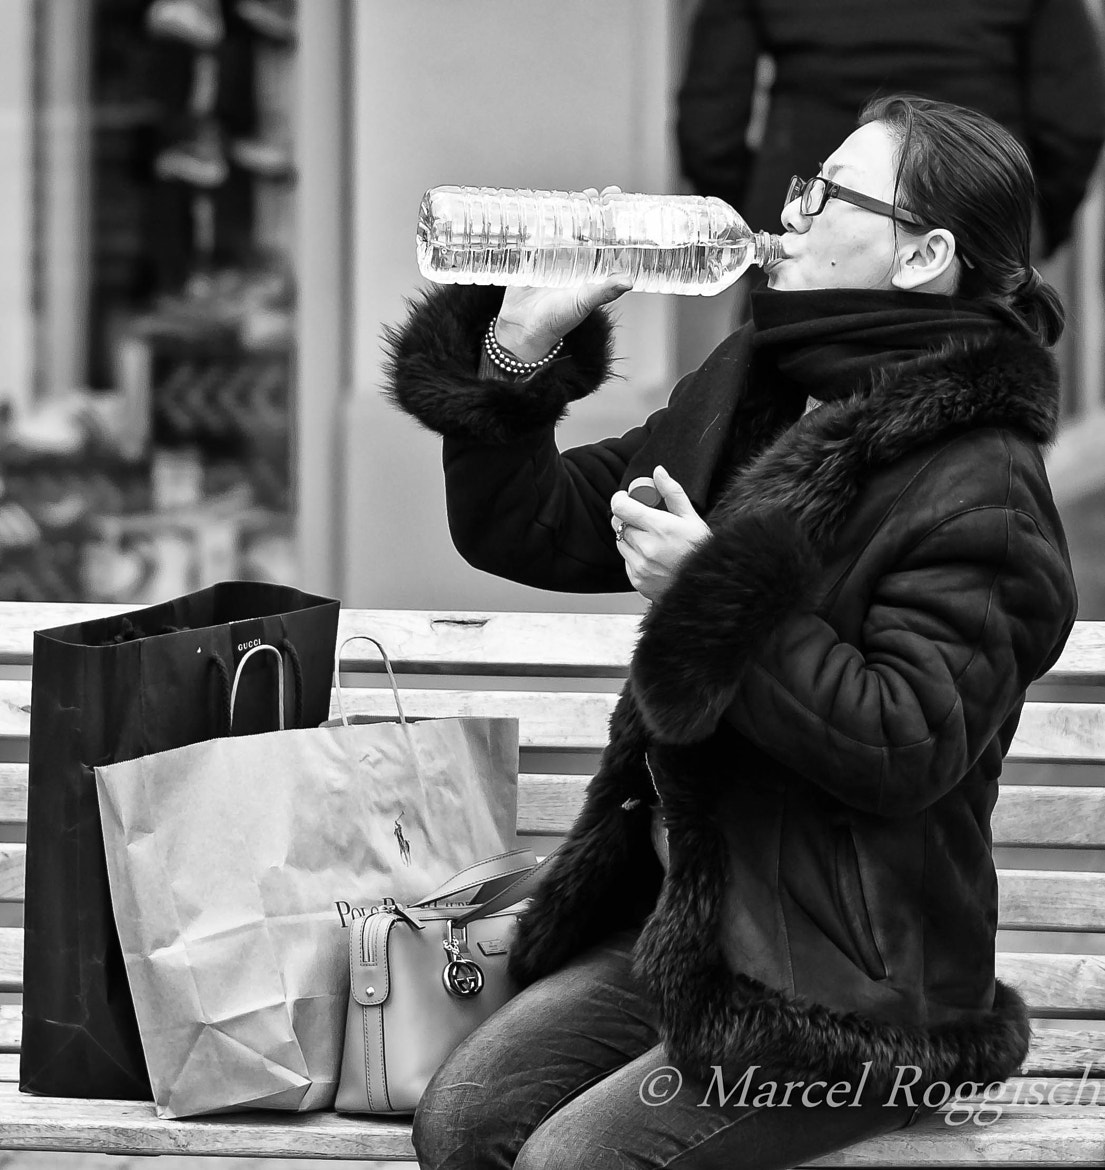 Photograph Shopping Makes You Thirsty by Marcel  Roggisch on 500px